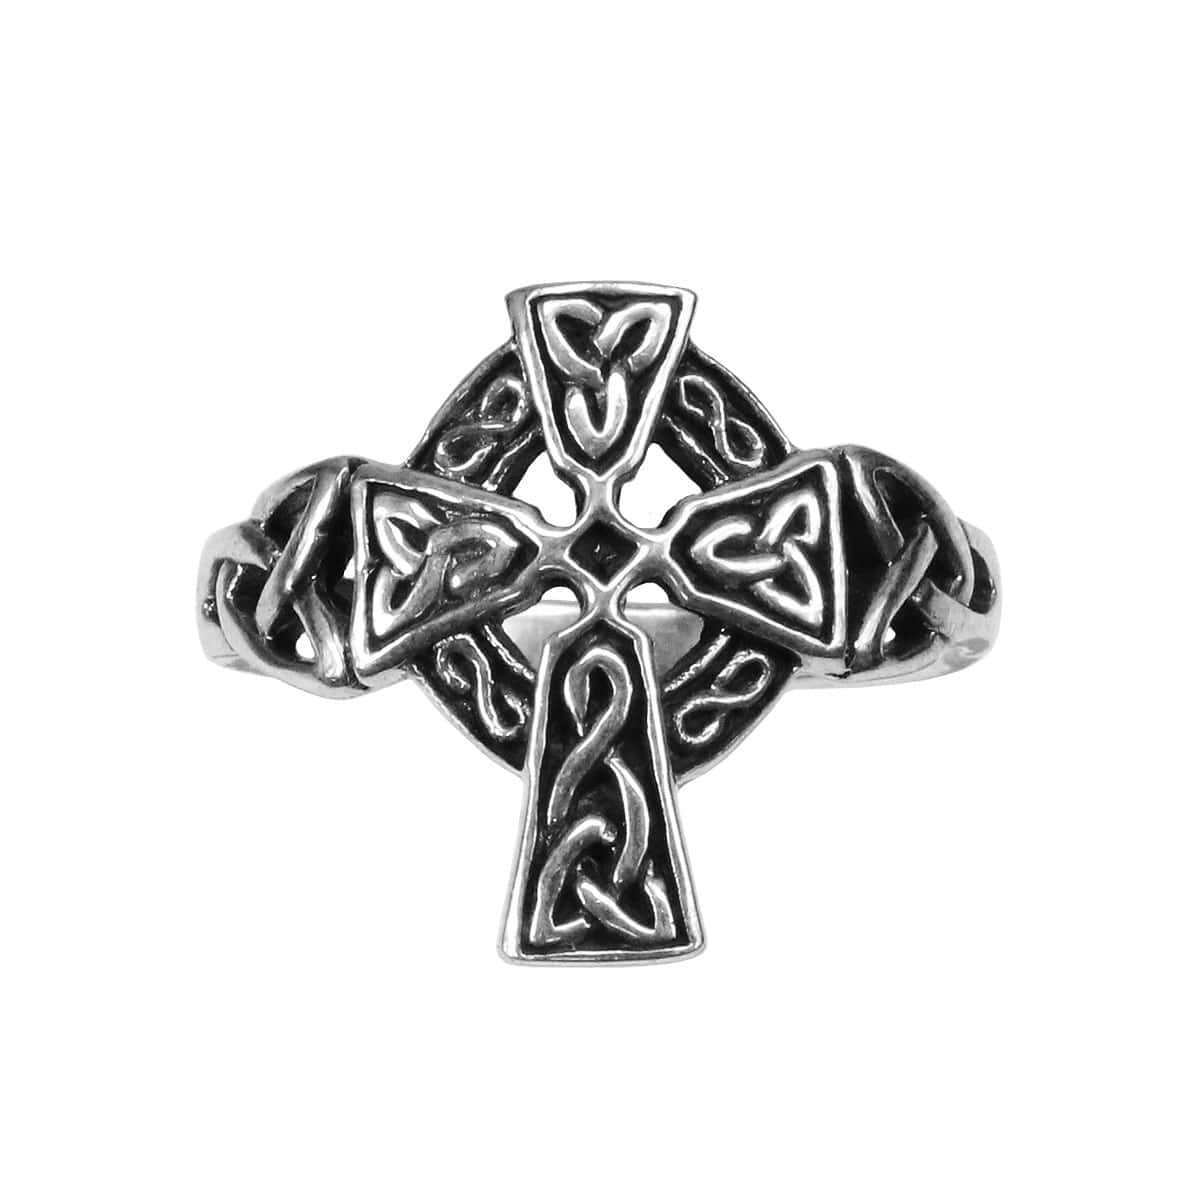 A Celtic Cross knot ring from the Celtic Croft